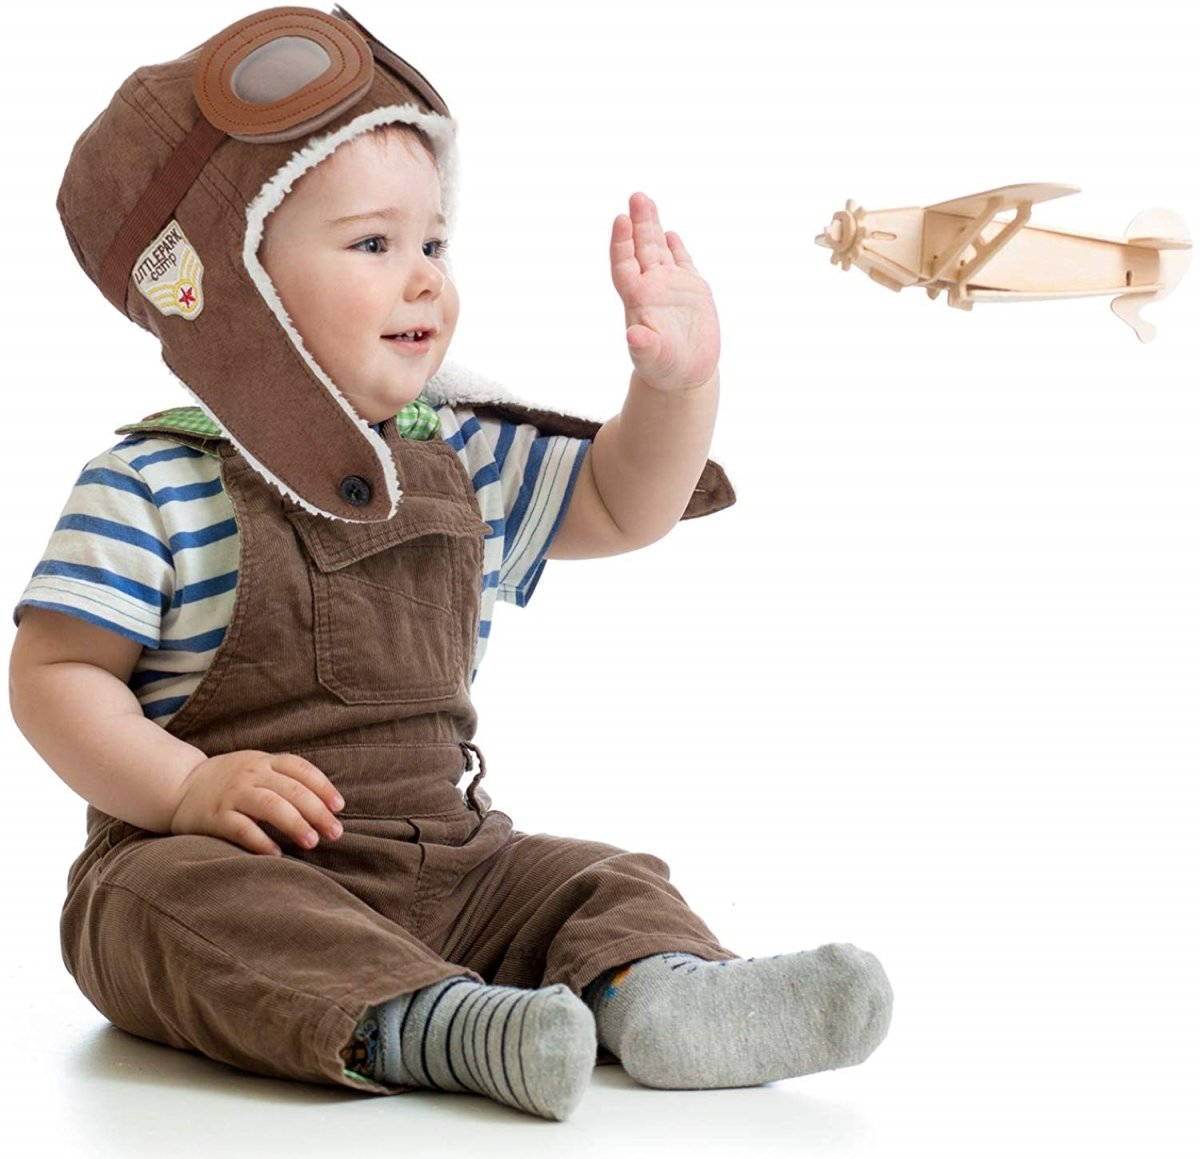 Unisex Warm Winter Pilot Aviator Kids Hat with attached Goggles - ZERO TO THREE CLUB Unpublished